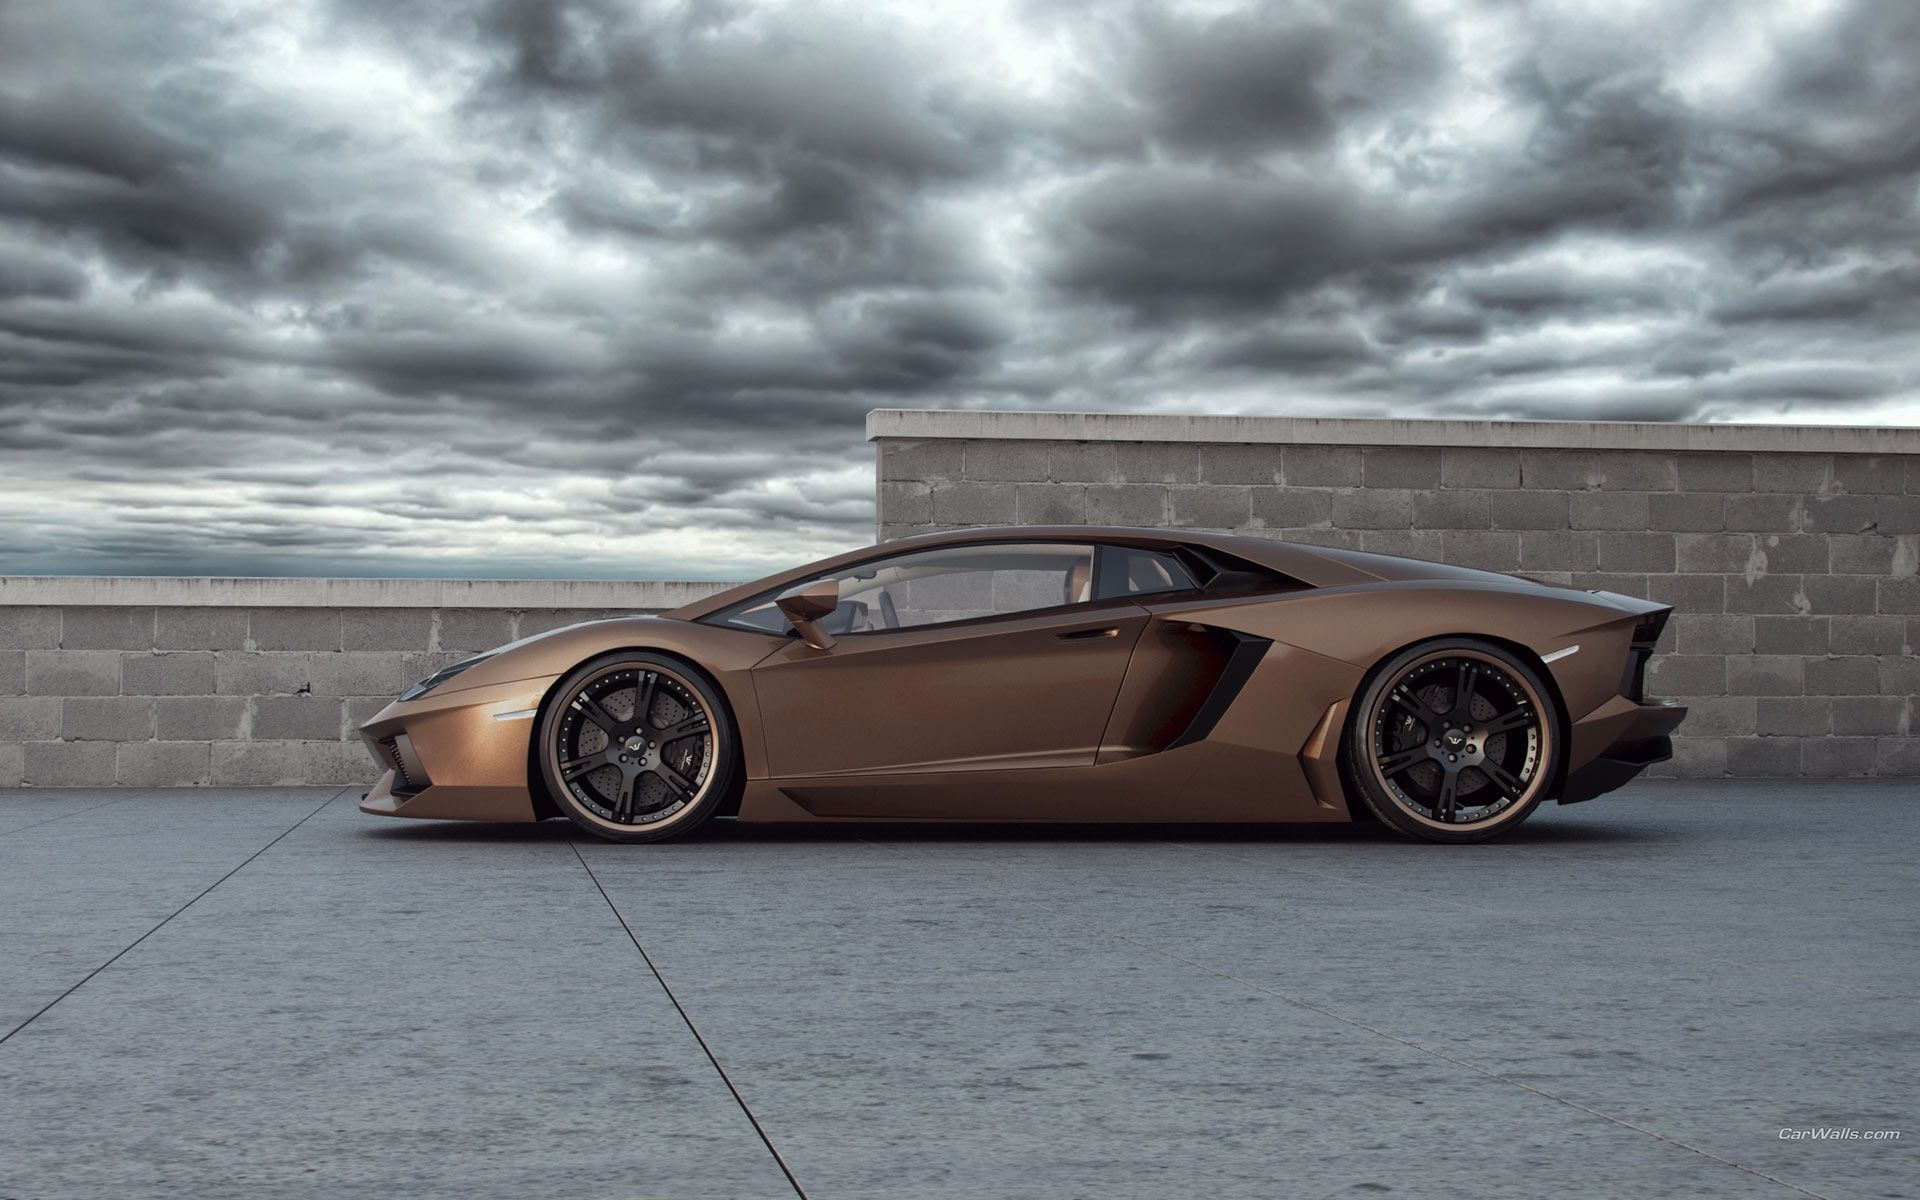 High Quality 2012 Wheelsandmore Lamborghini Aventador Rabbioso Wallpapers  For Your Desktop In Many Resolutions!